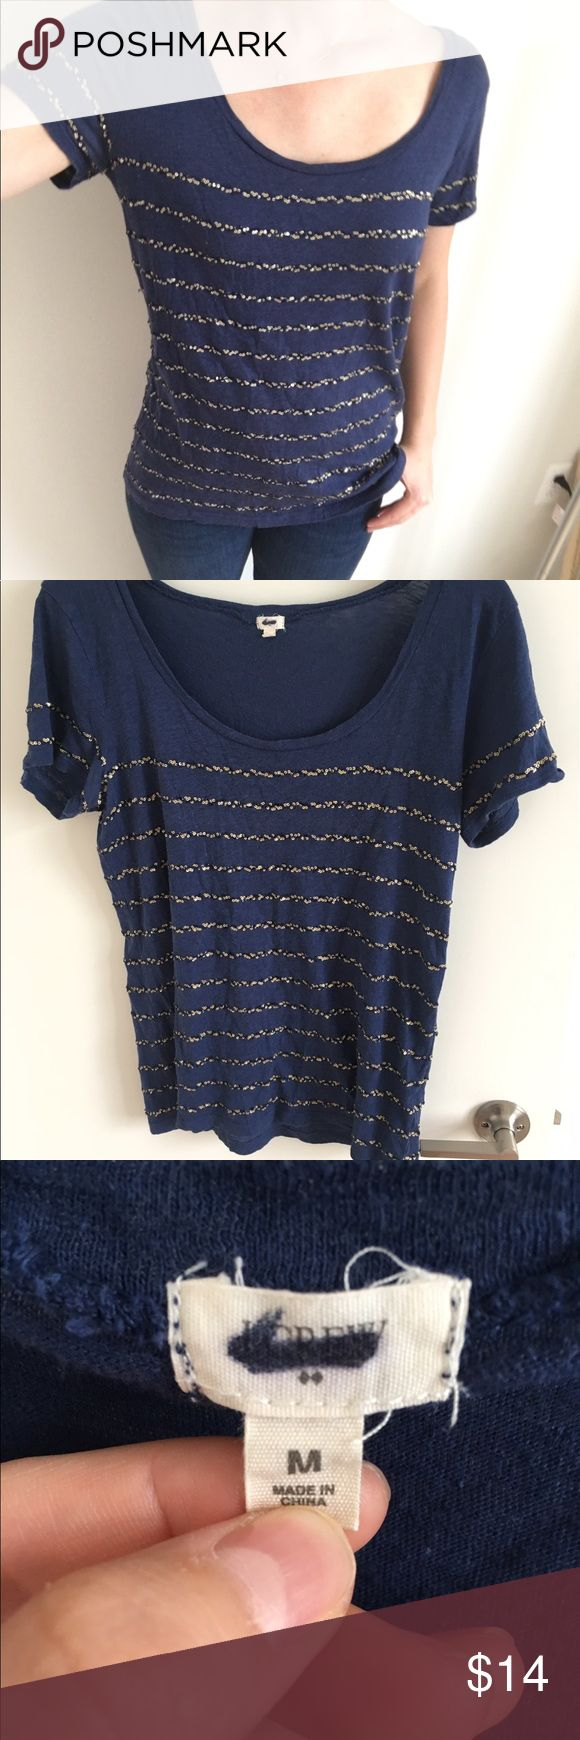 J Crew sequin shirt! Navy blue j crew sequined shirt with gold and navy blue sequins wrapping around the entire shirt. Worn a handful of time. J. Crew Tops Tees - Short Sleeve